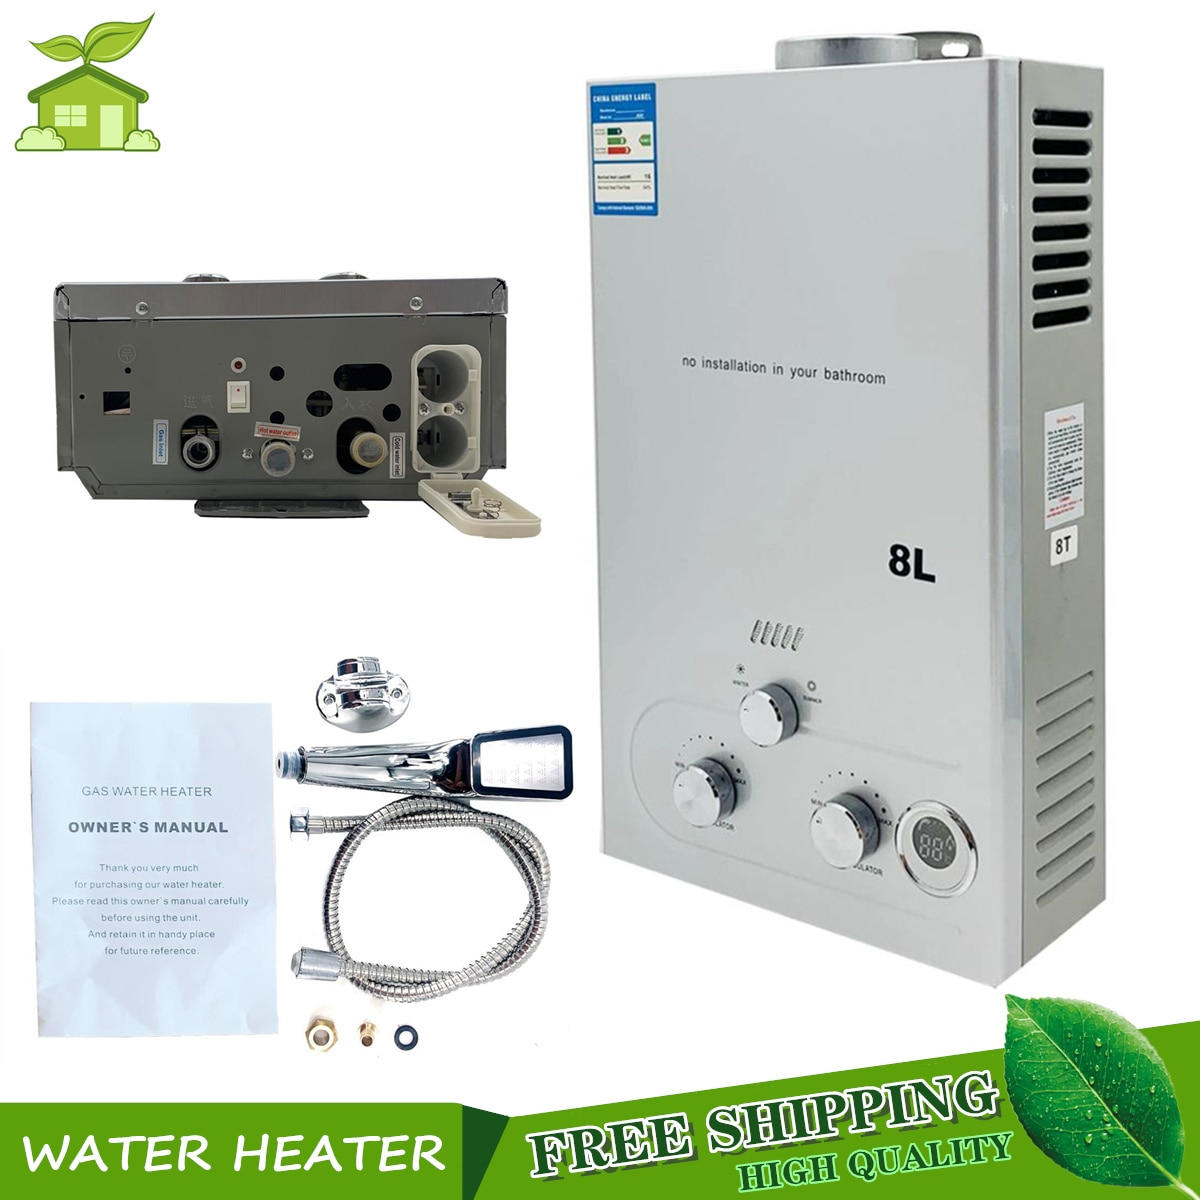 8L Tankless Propane Gas Water Heater 16KW LPG Instant Hot Water Heater Boiler LED Display Outdoor Ca